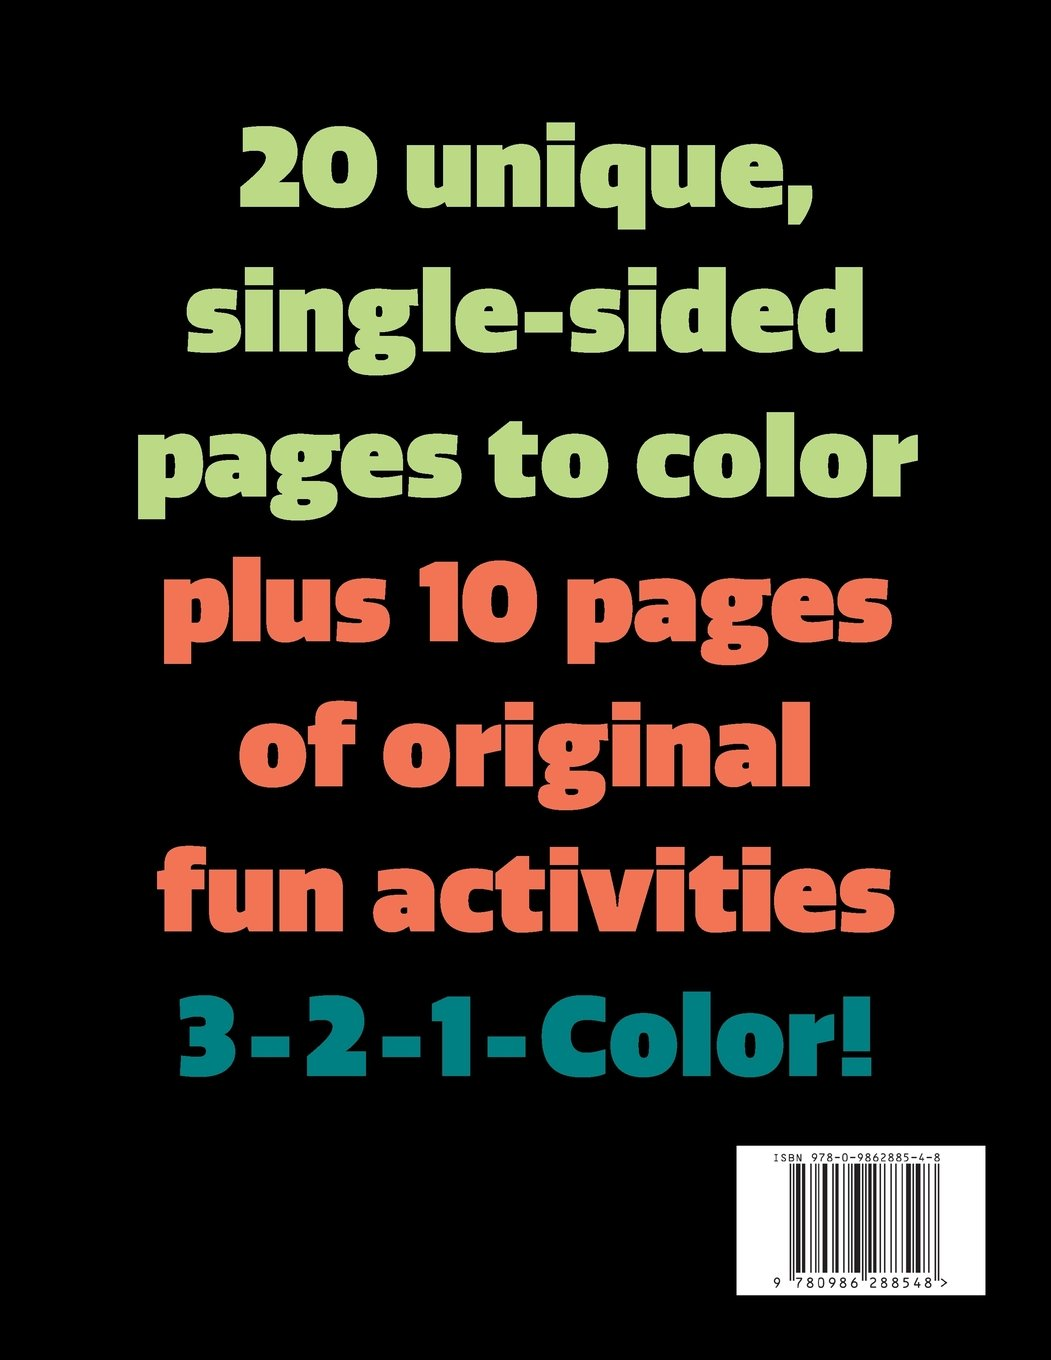 Amazon Com The Functional Fitness Coloring Activity Book For Adults 9780986288548 Darsh Lisbeth Rodarte Justas Books